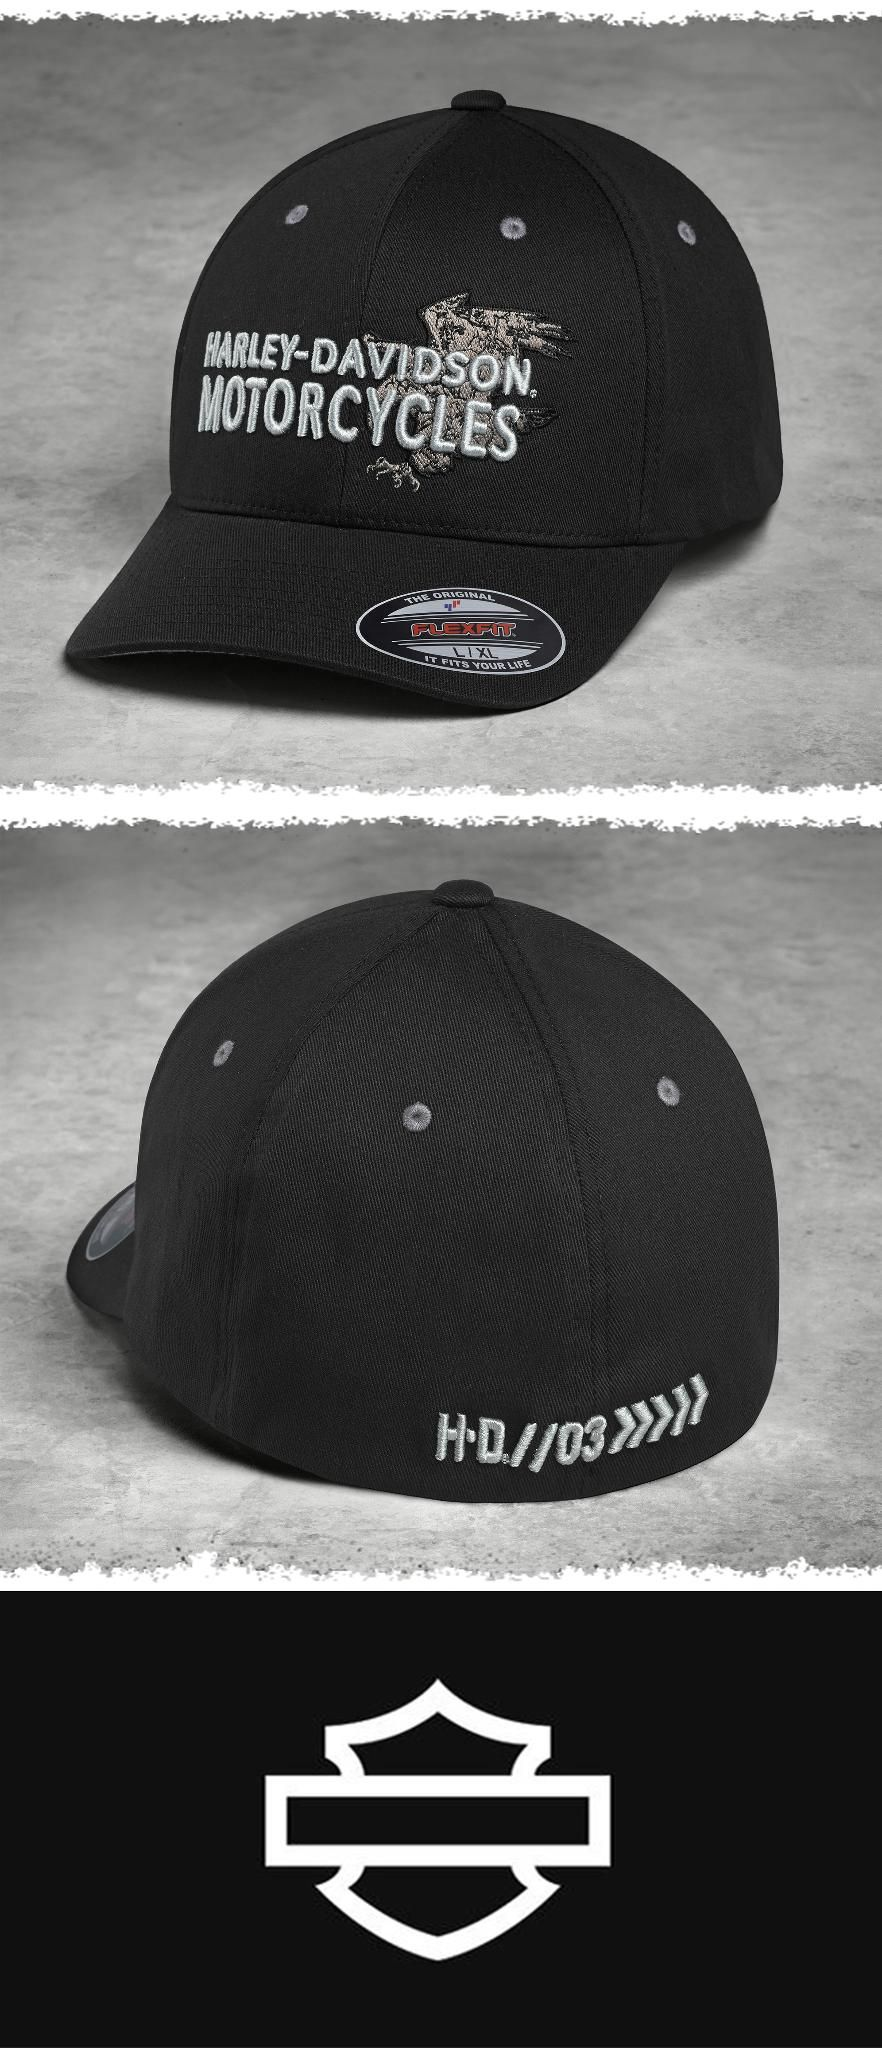 62434507b The Flexfit® interior comfort stretch band is a secret weapon against  squeezing, pinching hats. | Harley-Davidson Men's Embroidered Eagle Stretch  Cap